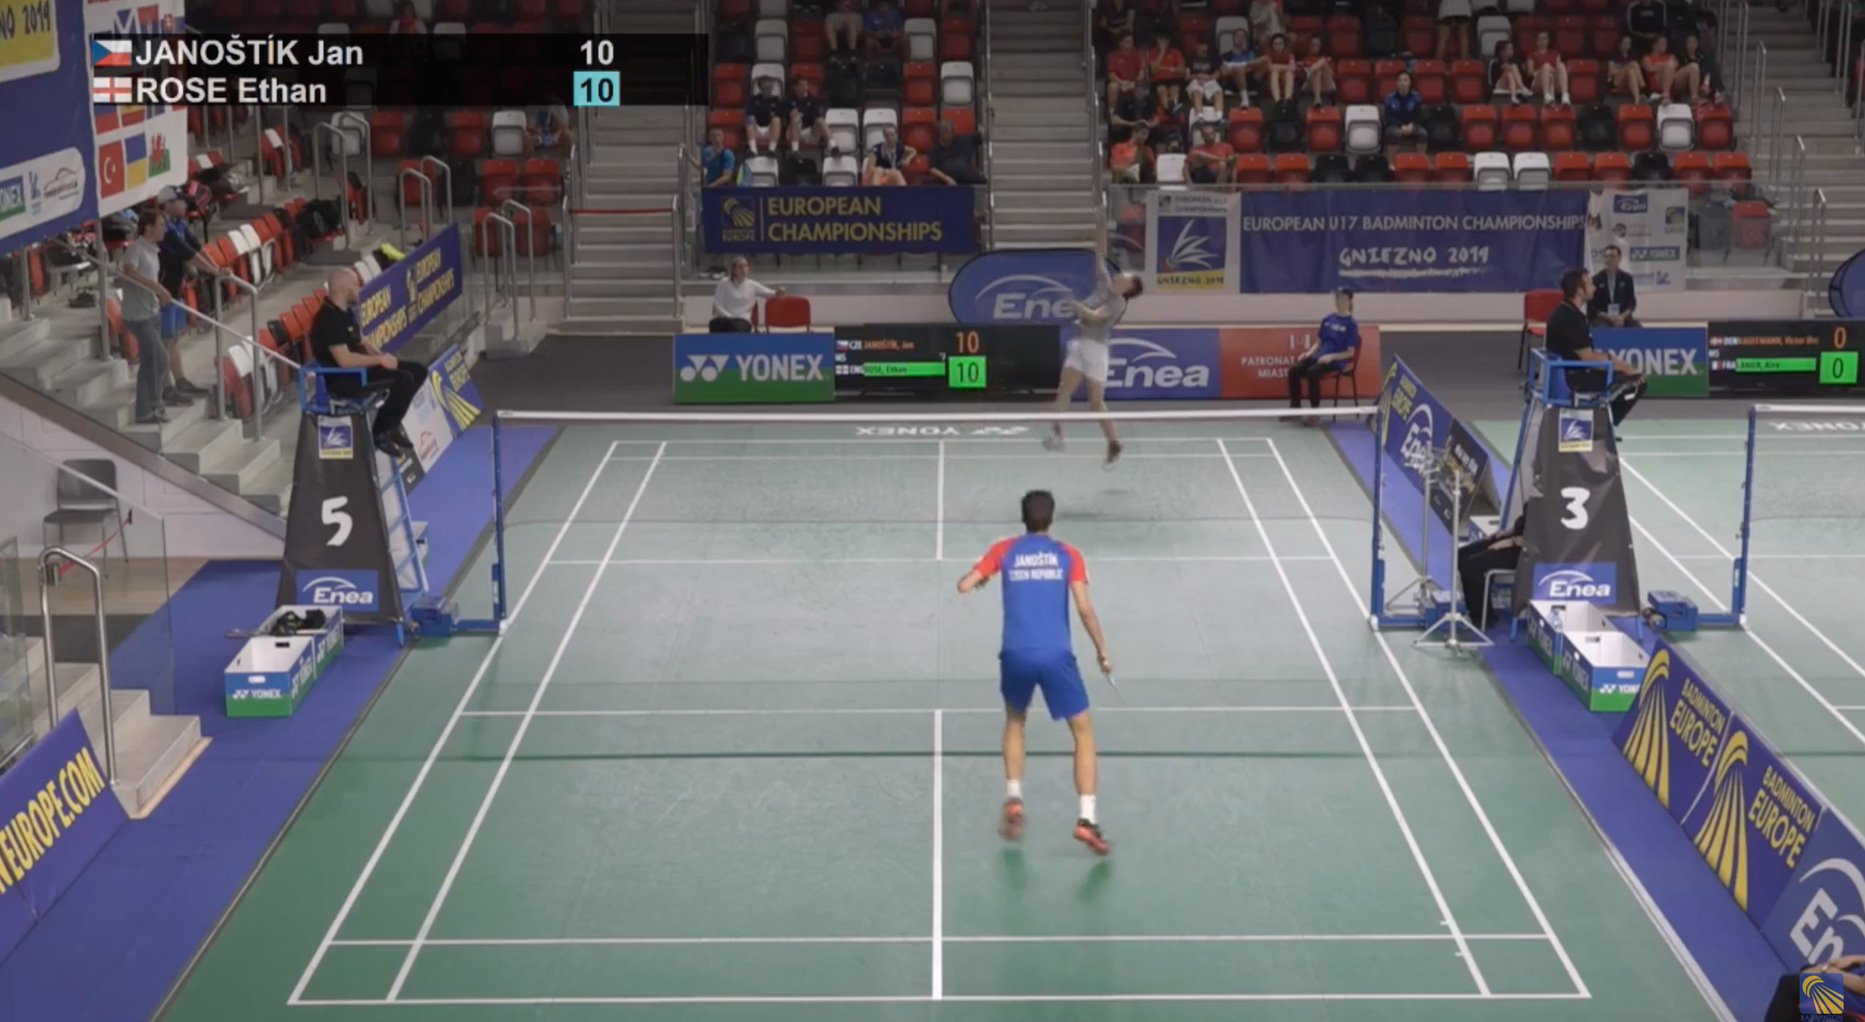 Quarter Final Match – U17 European Badminton Championships (Sept 2019) – Beating No.1 Seed.